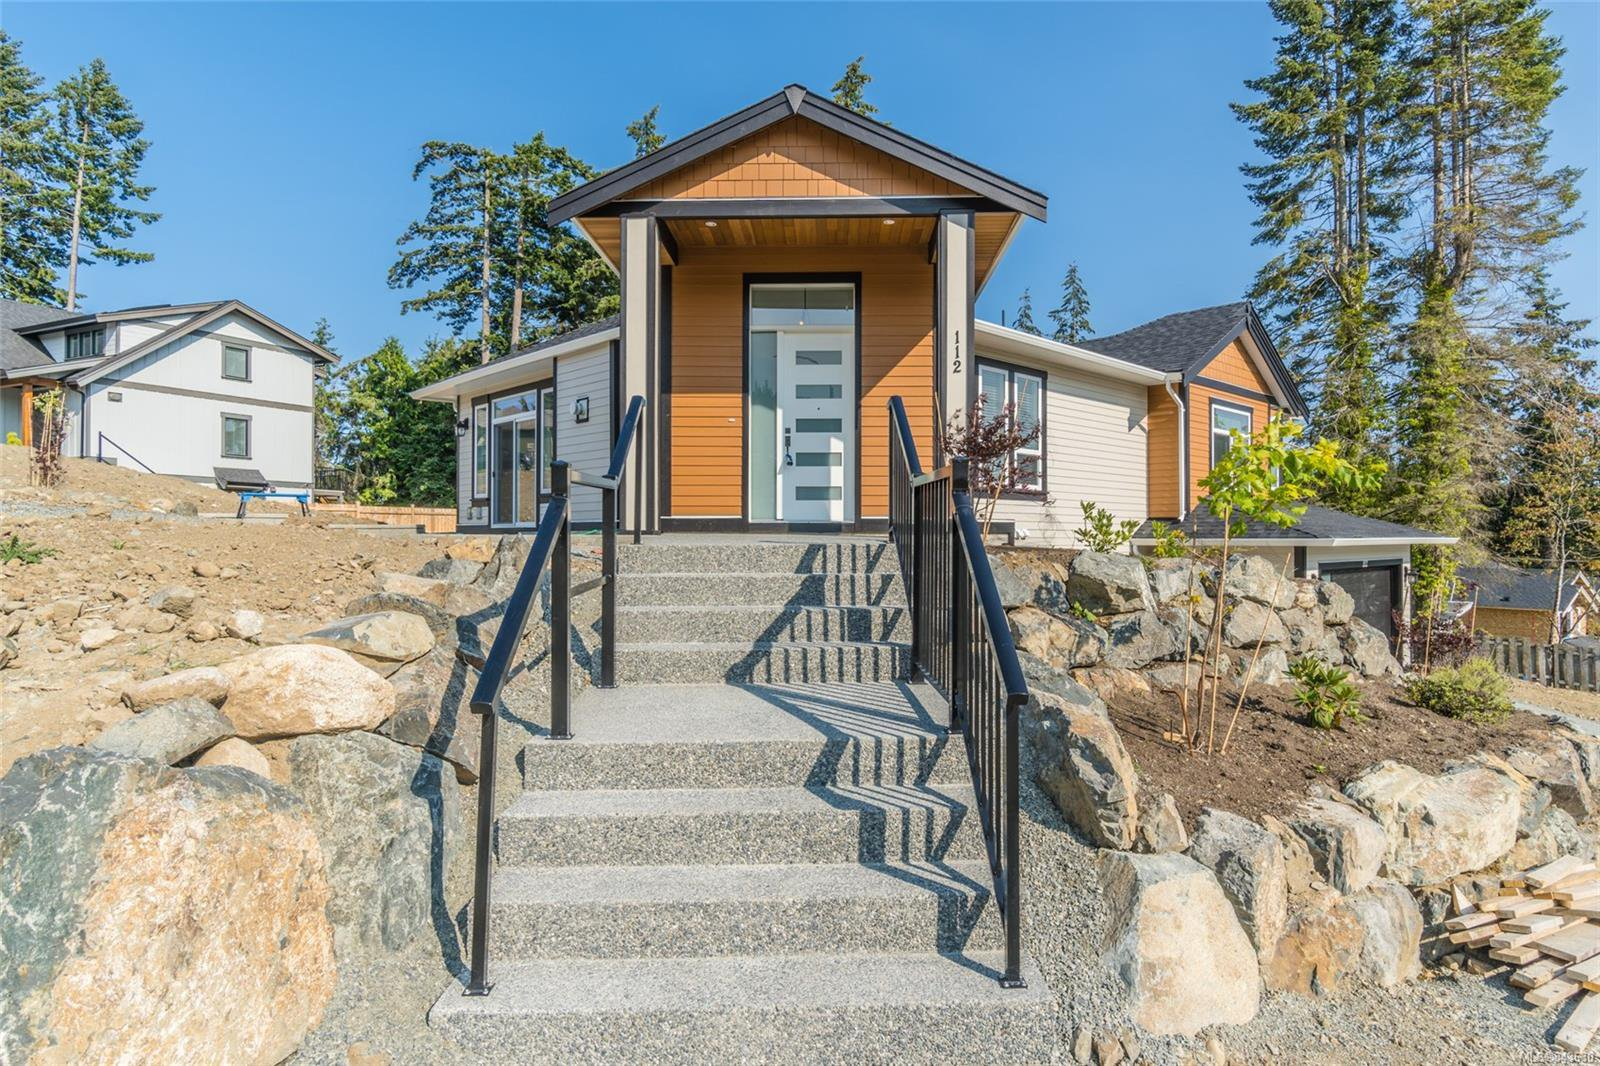 Main Photo: 112 Golden Oaks Cres in NANAIMO: Na Hammond Bay Single Family Detached for sale (Nanaimo)  : MLS®# 843630